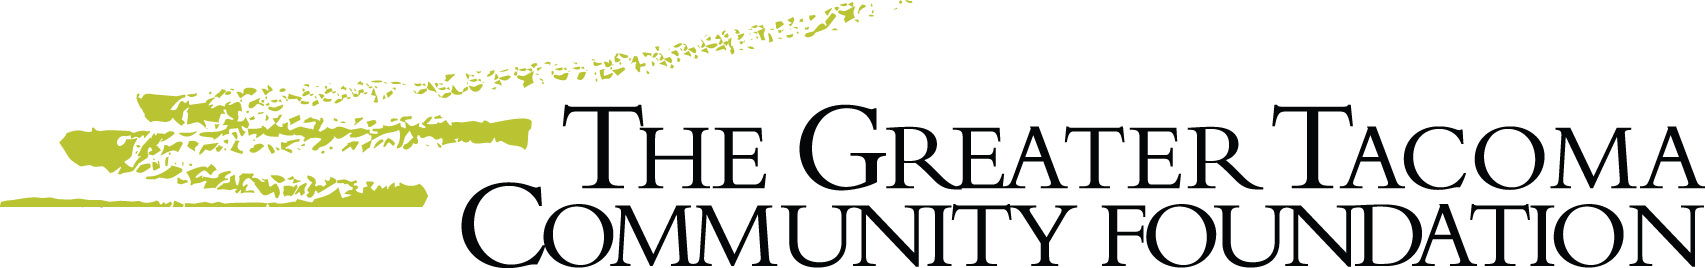 The Greater Tacoma Community Foundation logo